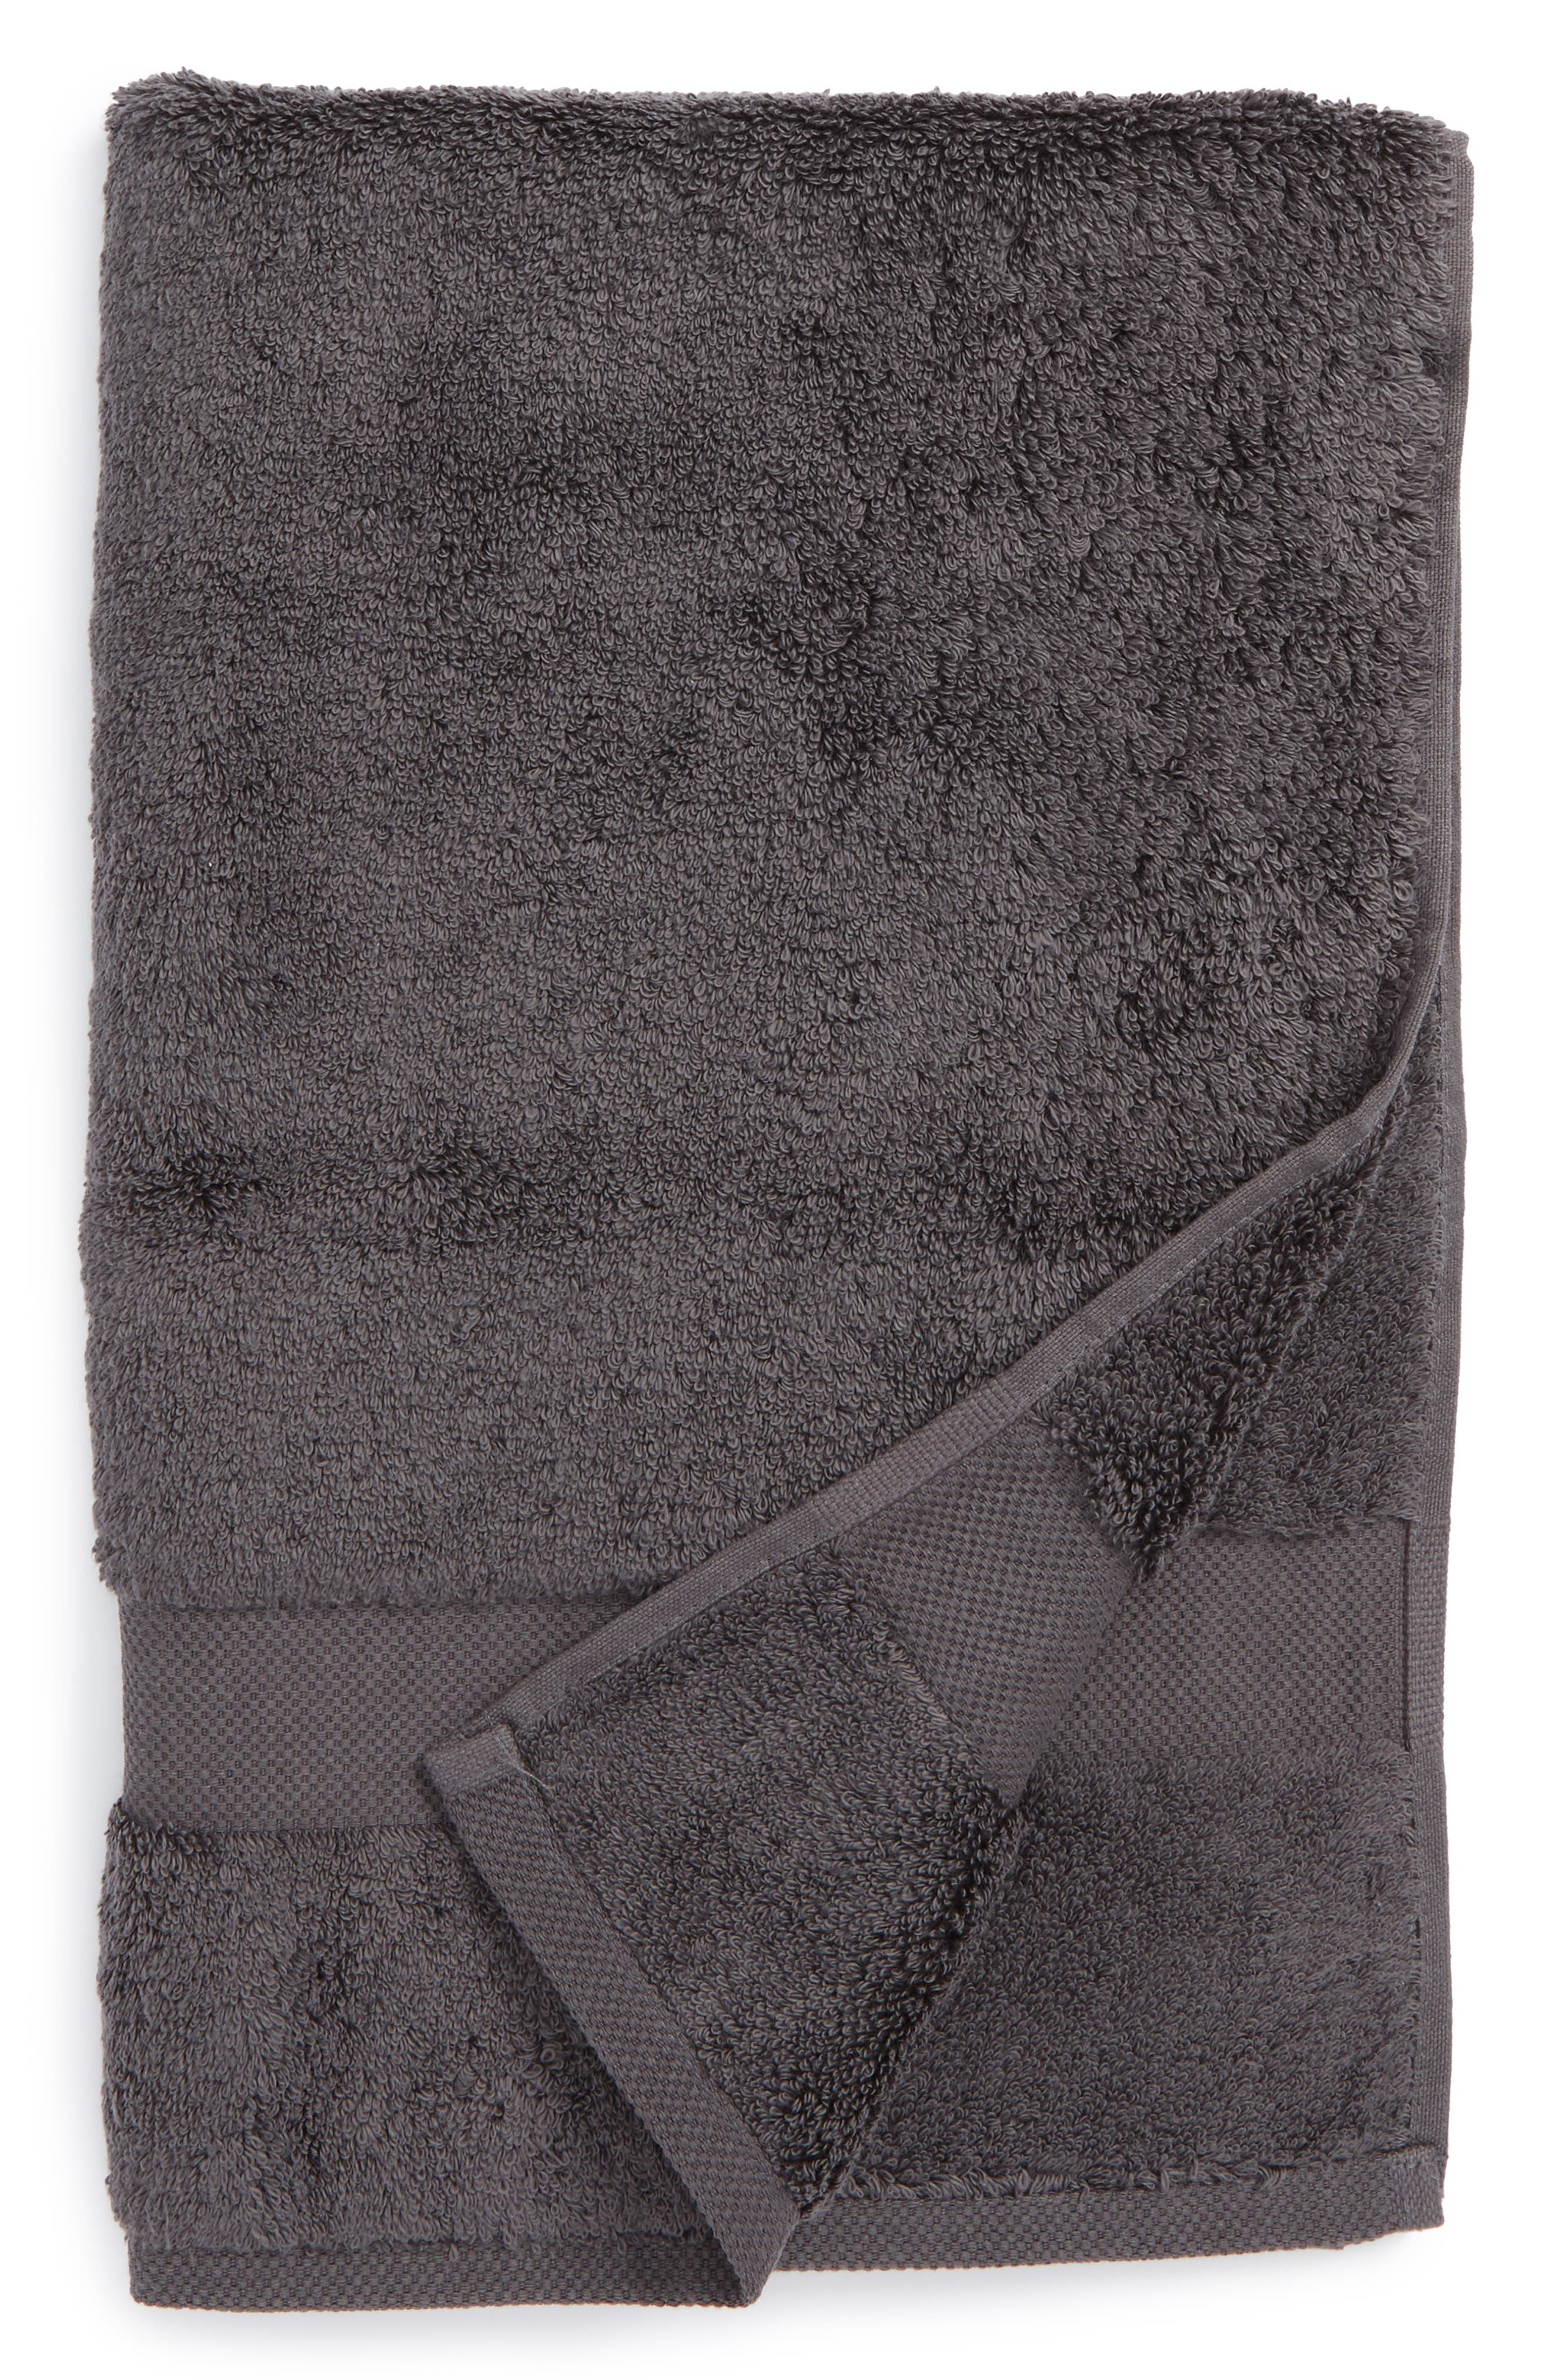 Lotus Hand Towel,                         Main,                         color, CHARCOAL